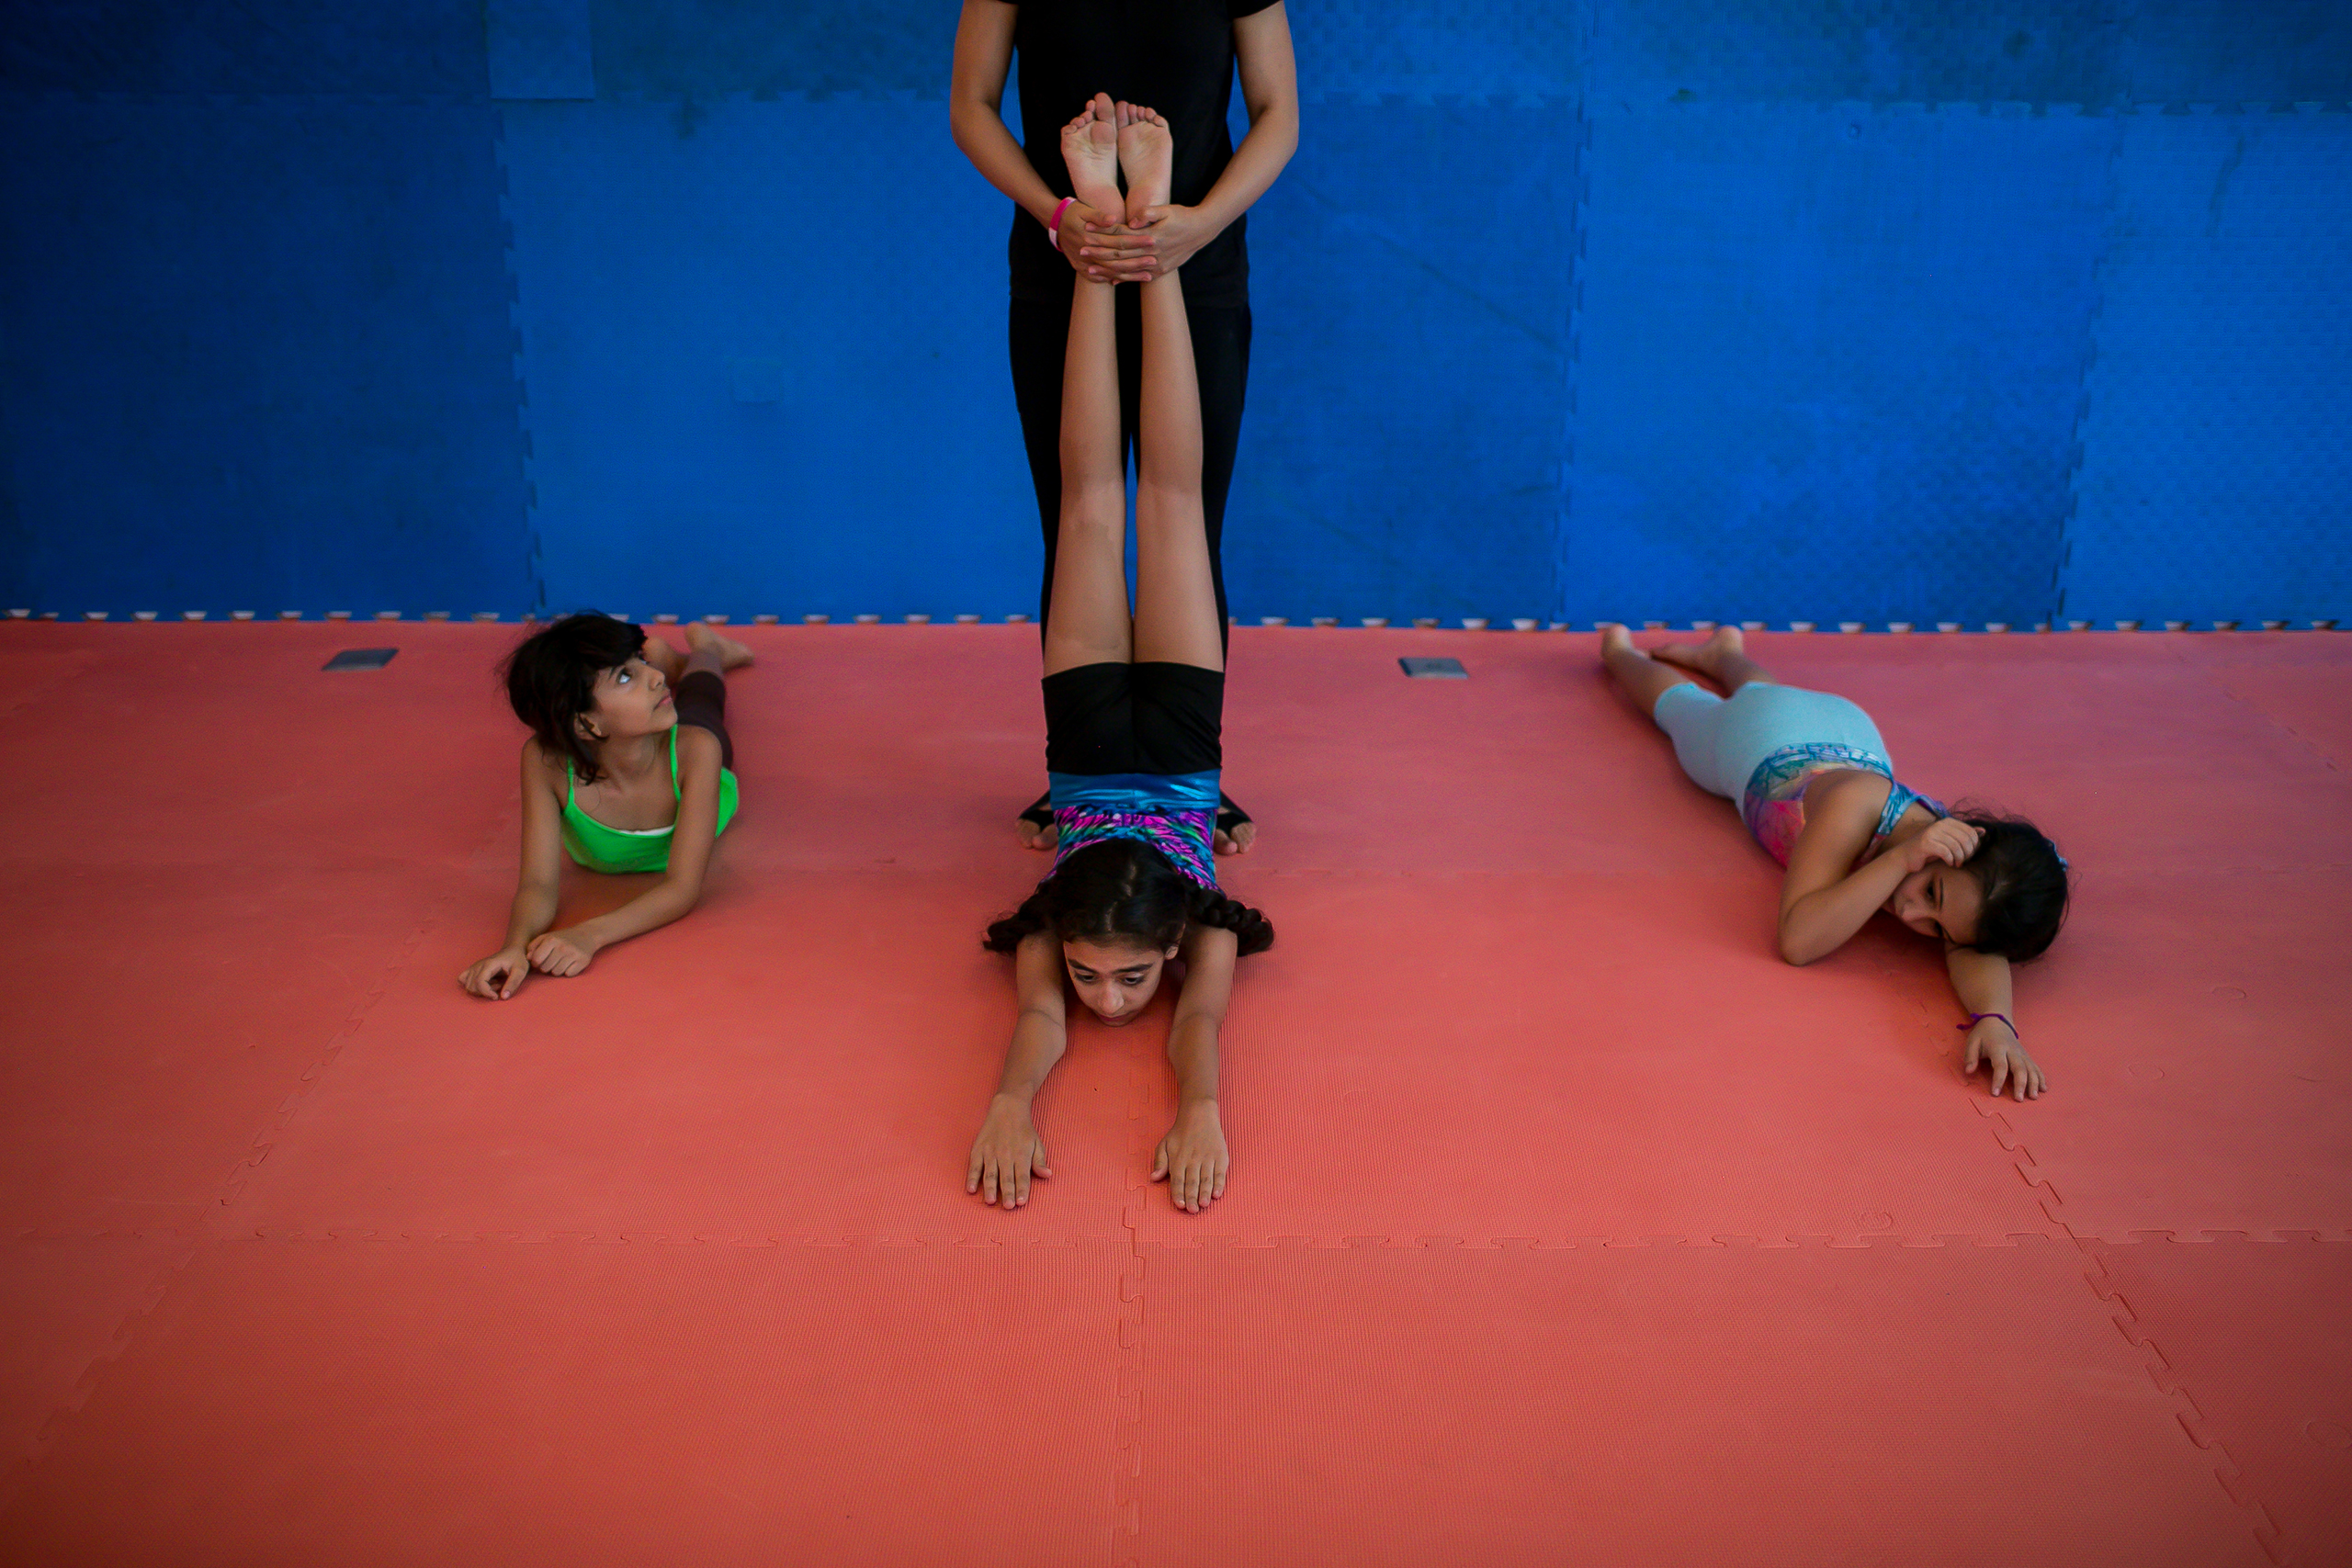 Mai's daughter, who aspires to be an actress and acrobat, attends a gym for young girls in Jeddah.